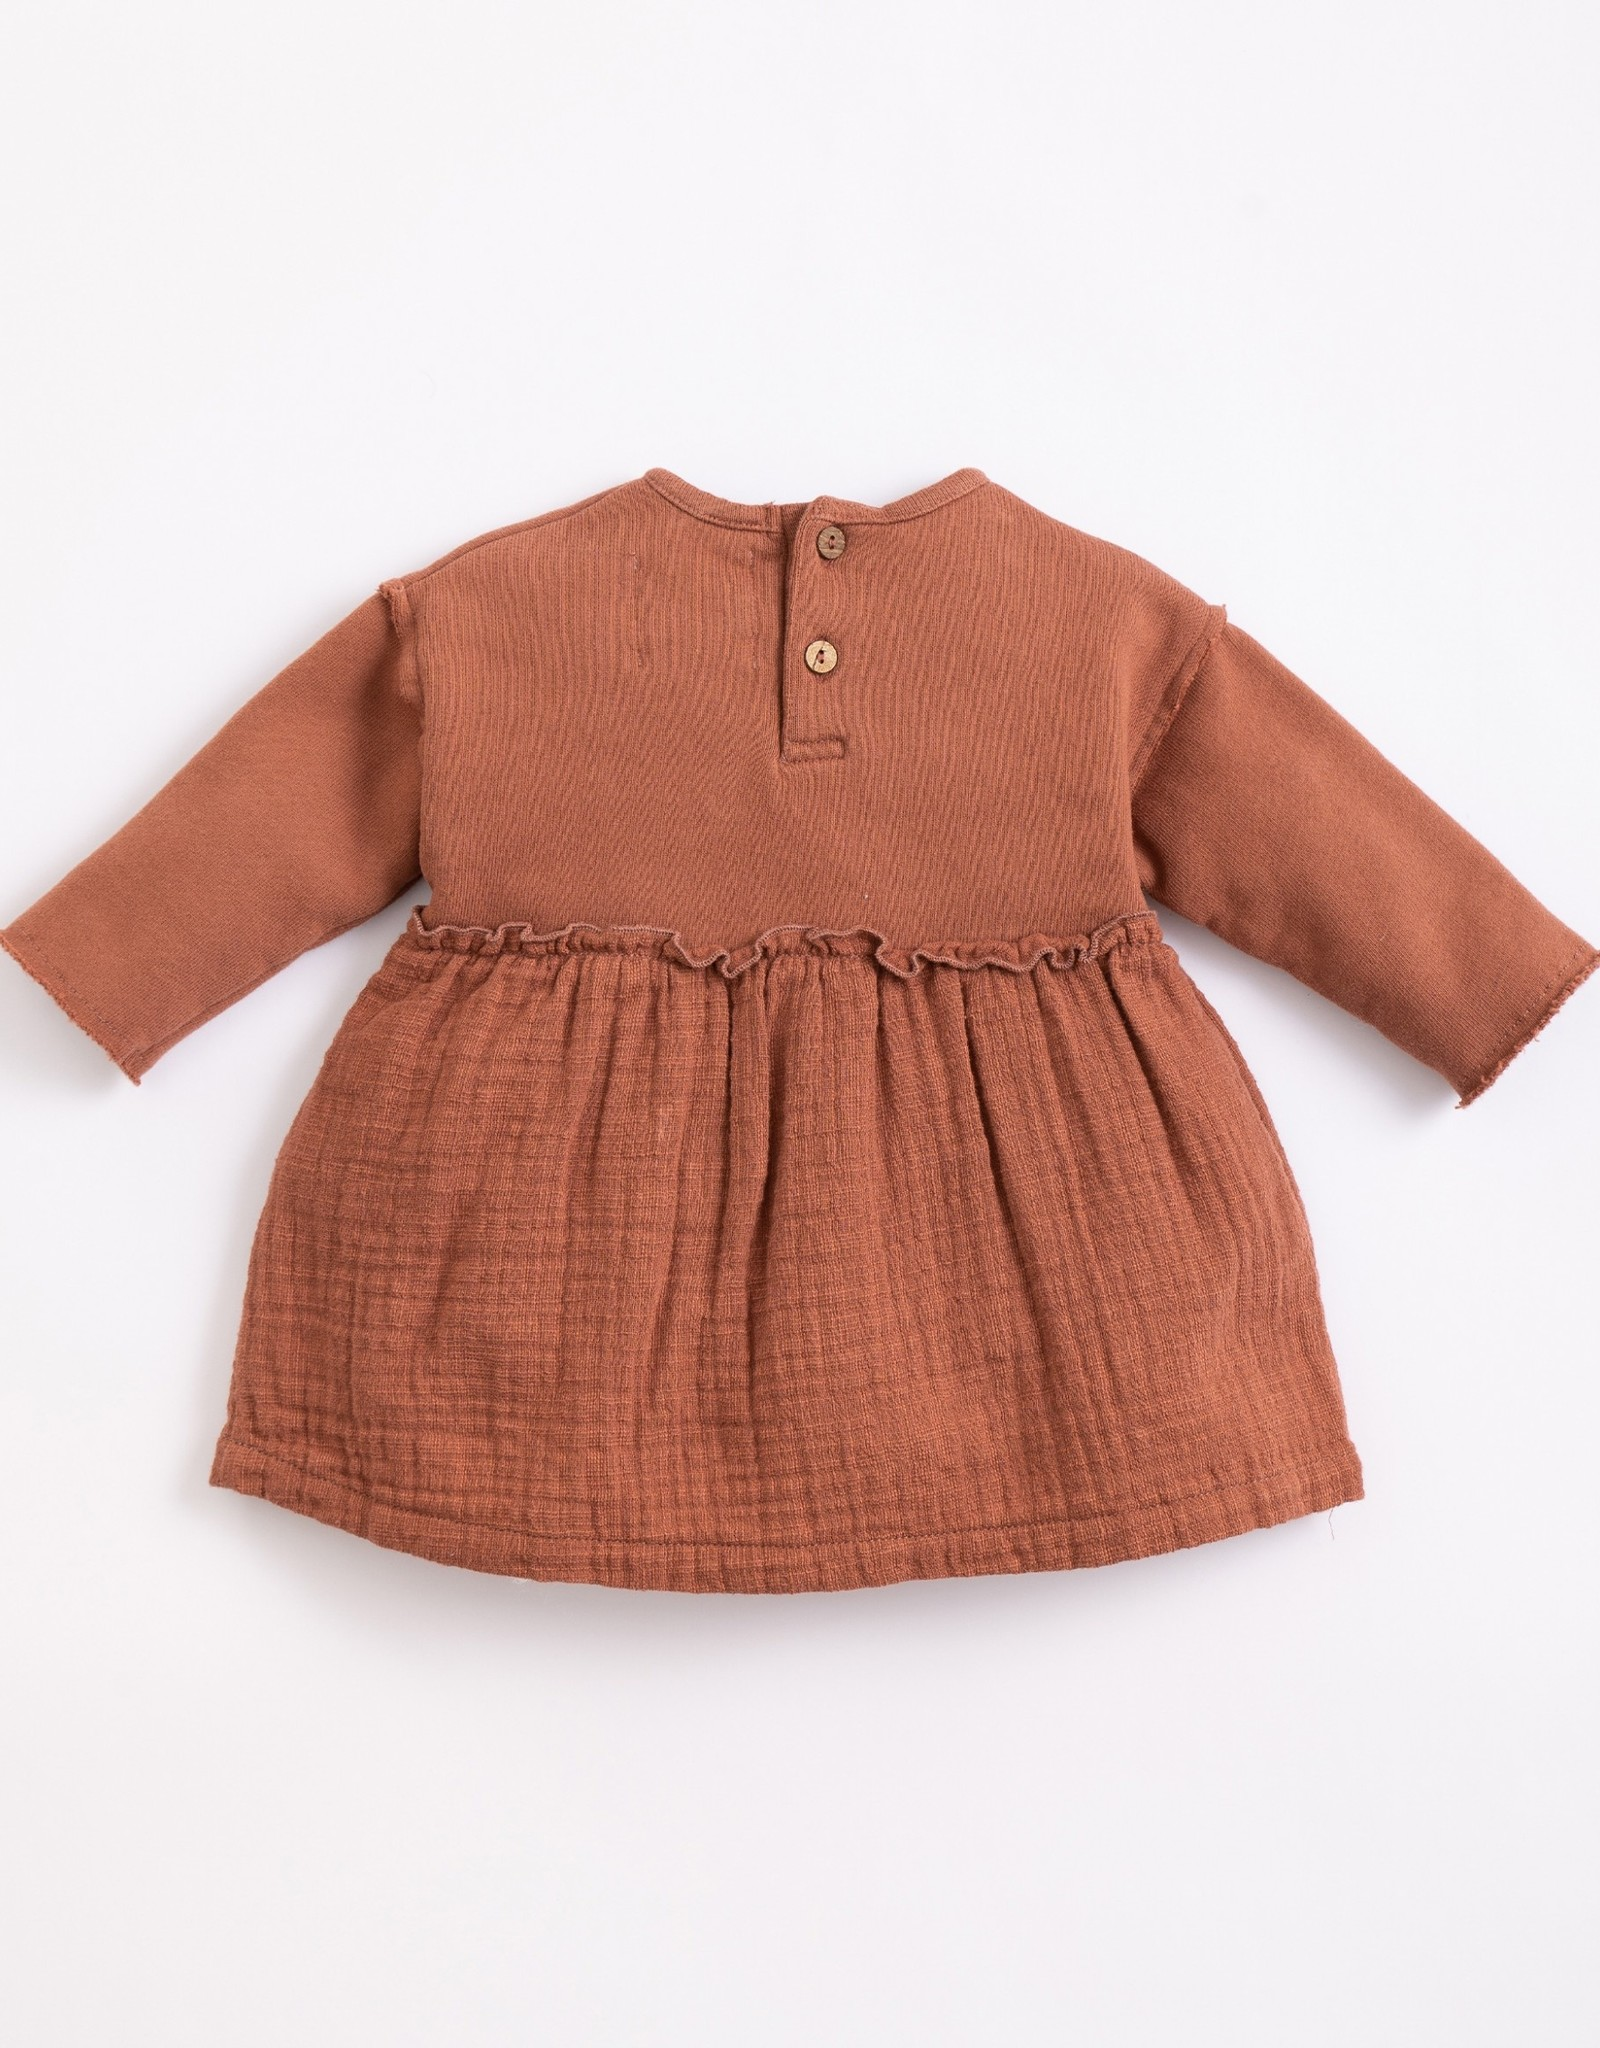 Play Up Play Up mixed texture dress sanguine (rood/bruin)